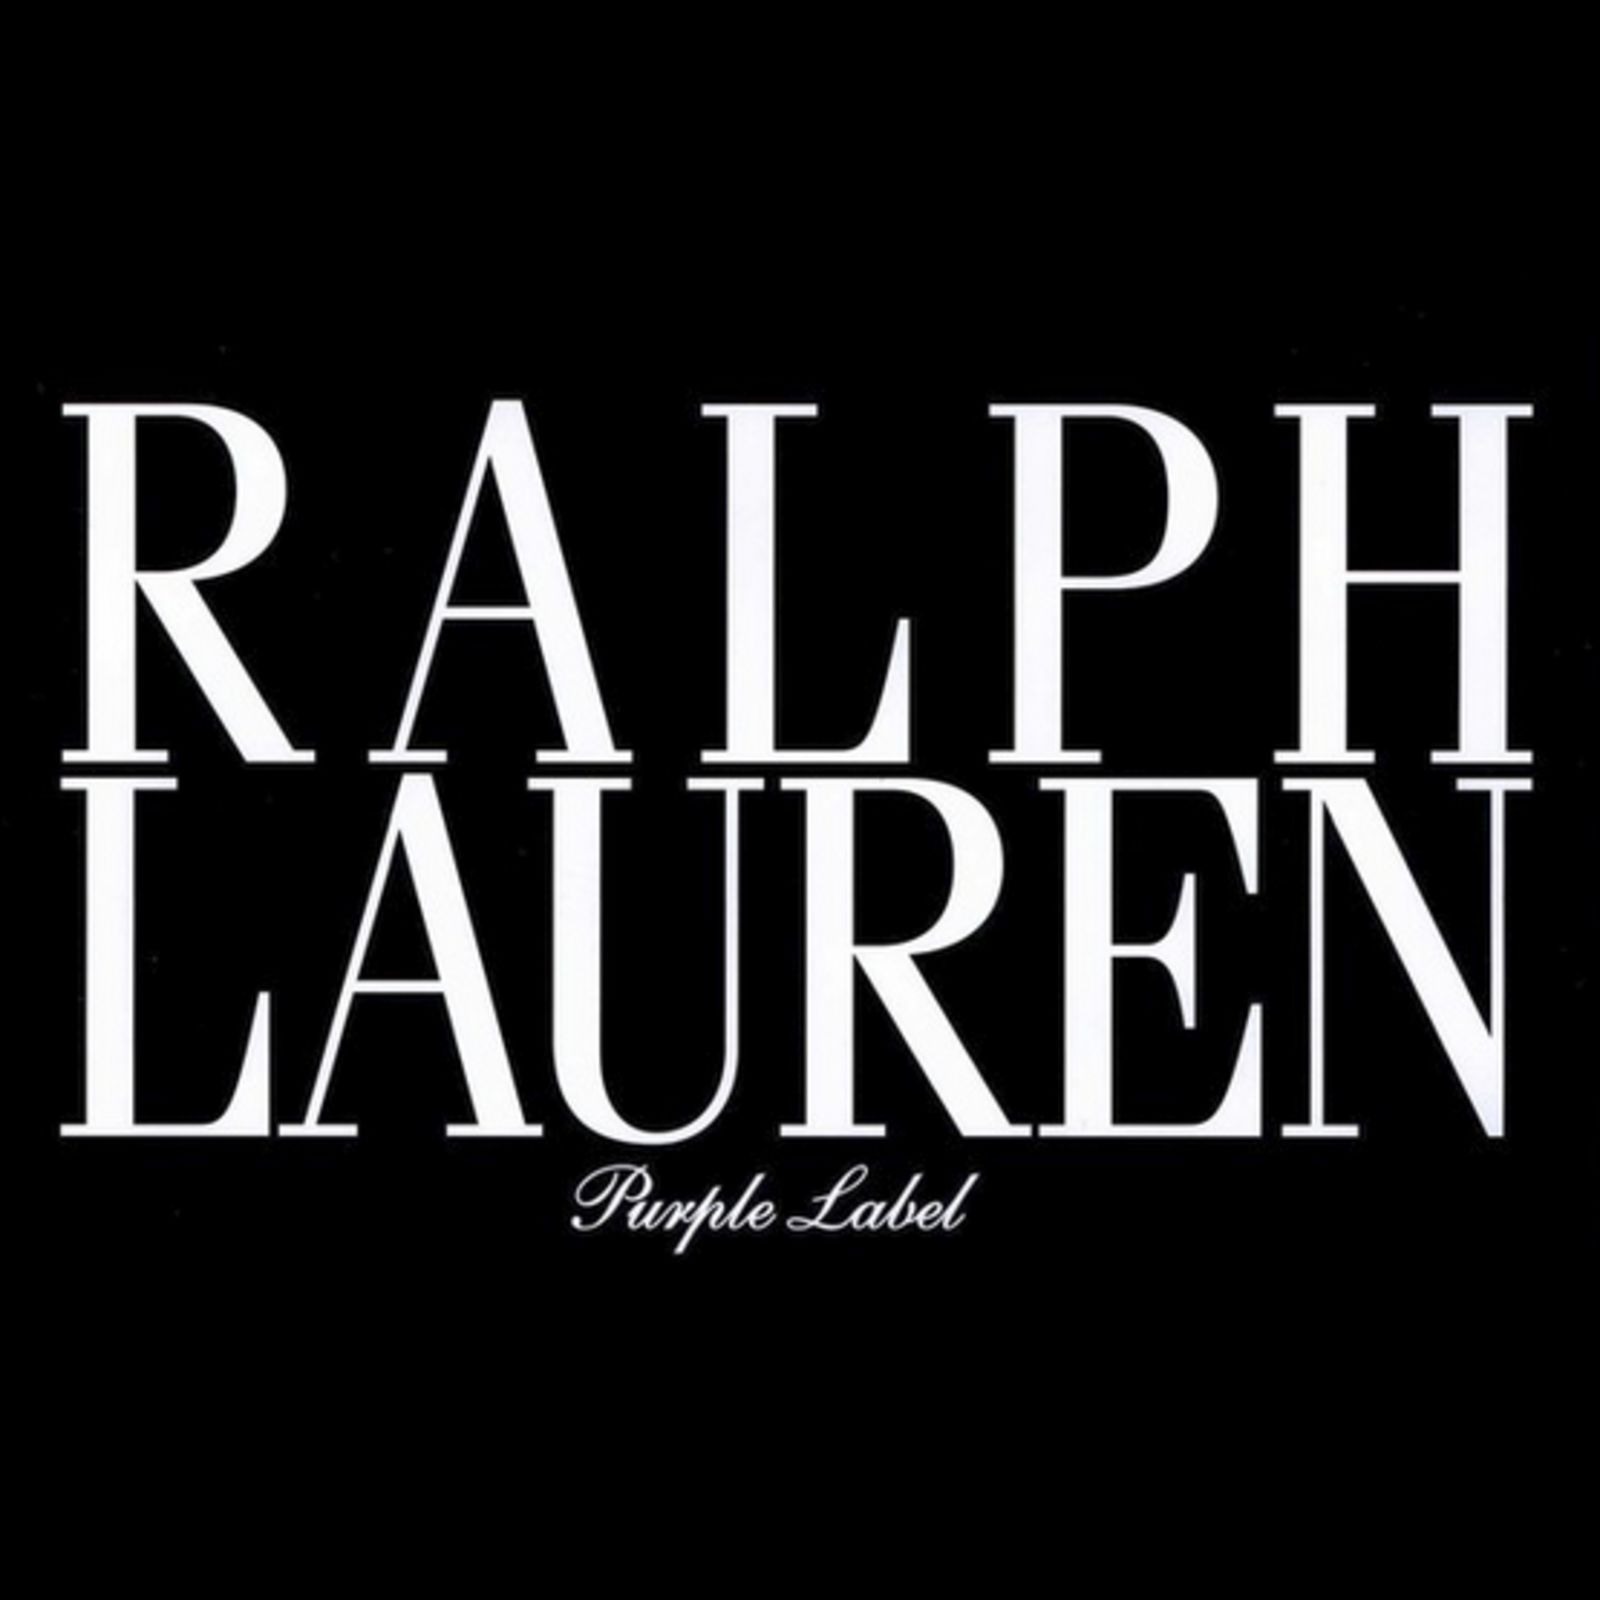 RALPH LAUREN PURPLE LABEL (Изображение 1)